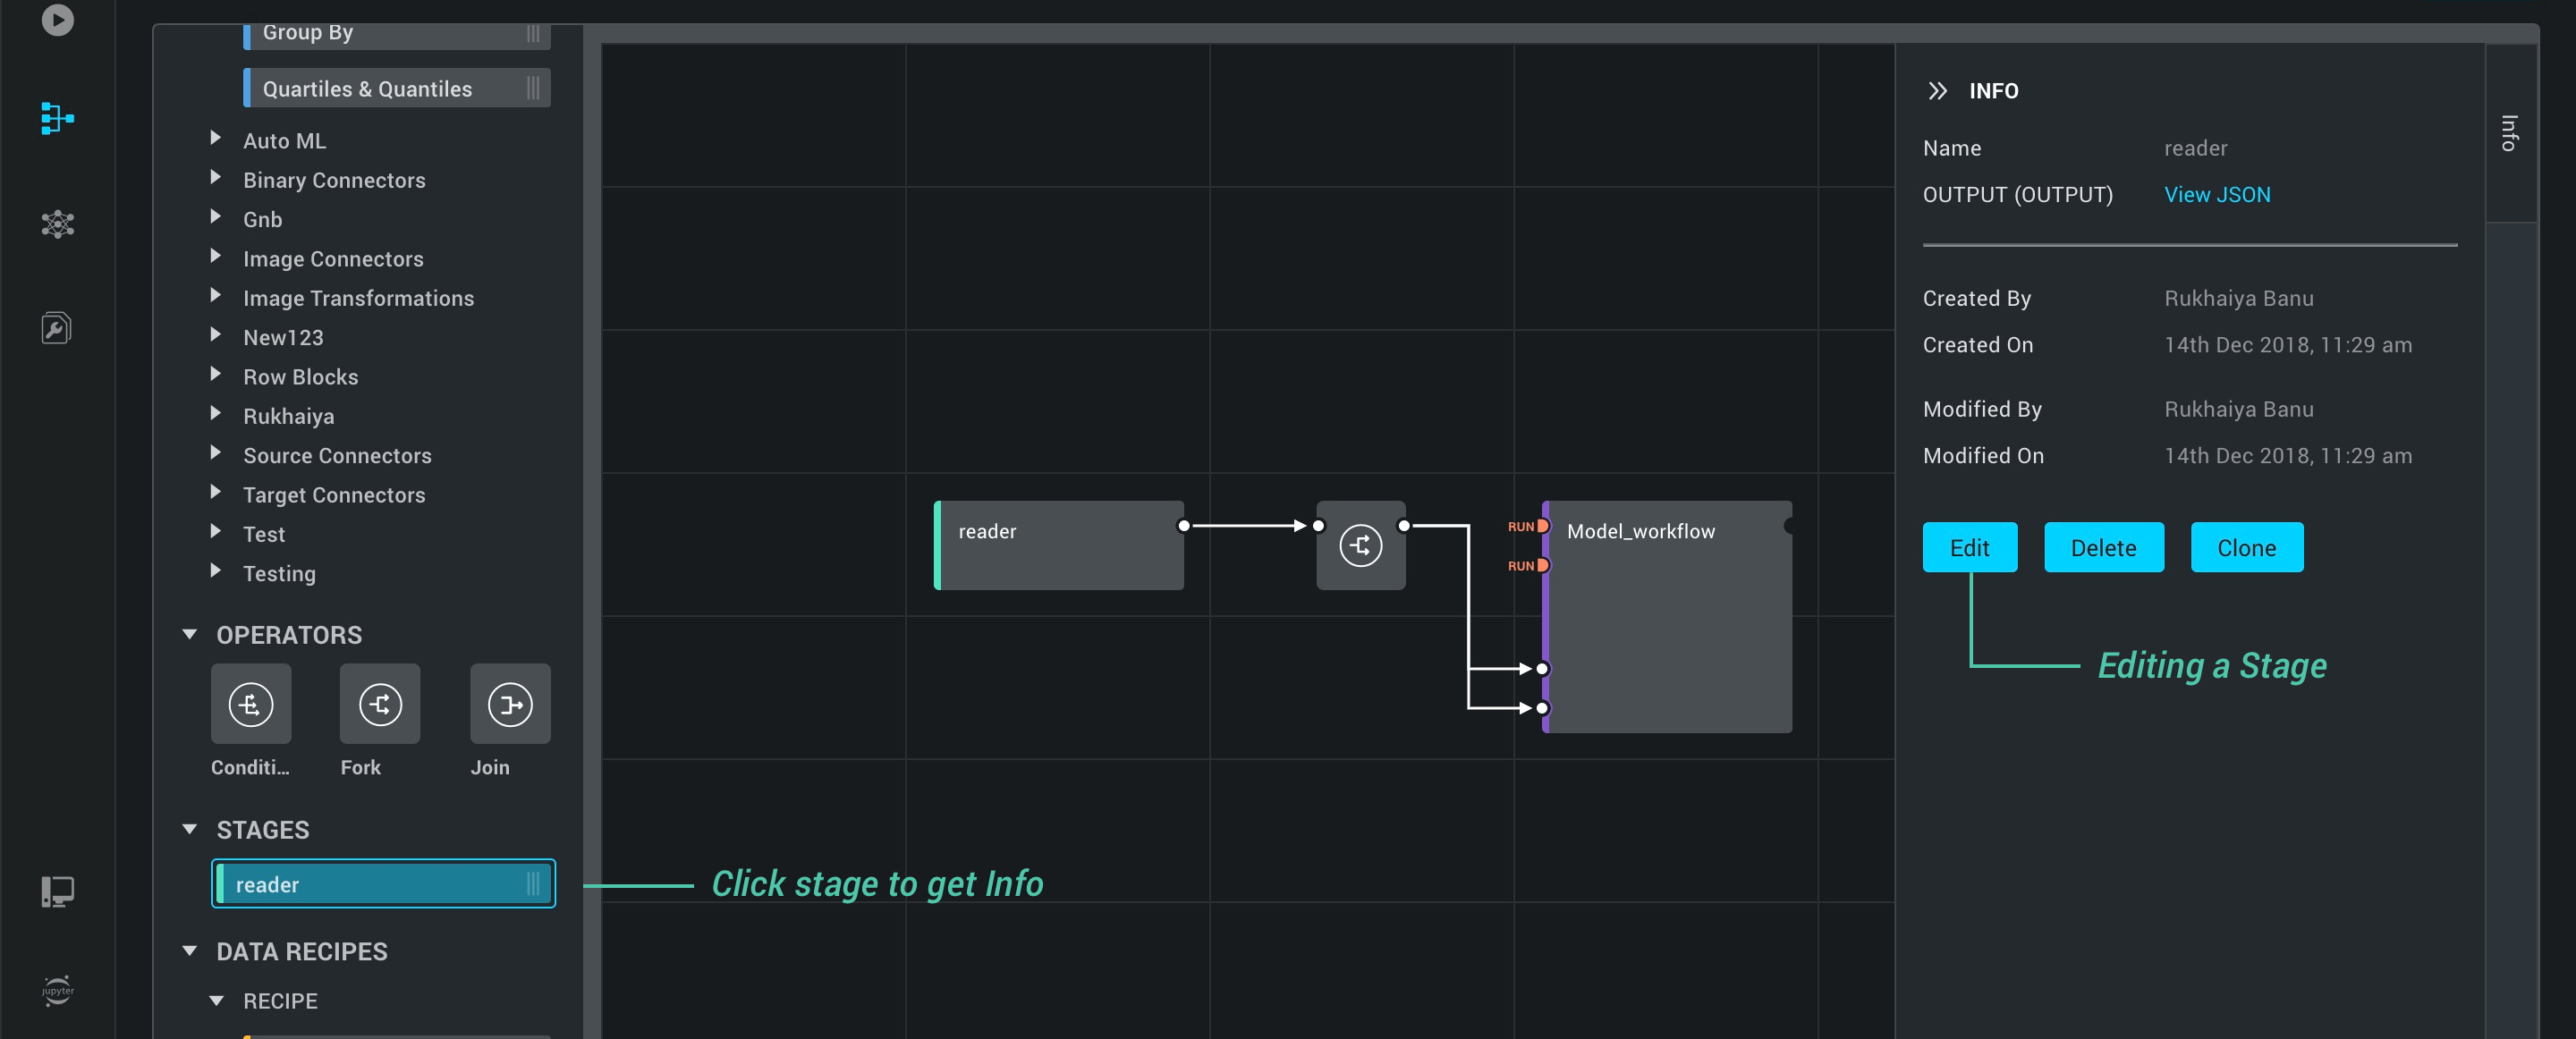 Editing a Stage